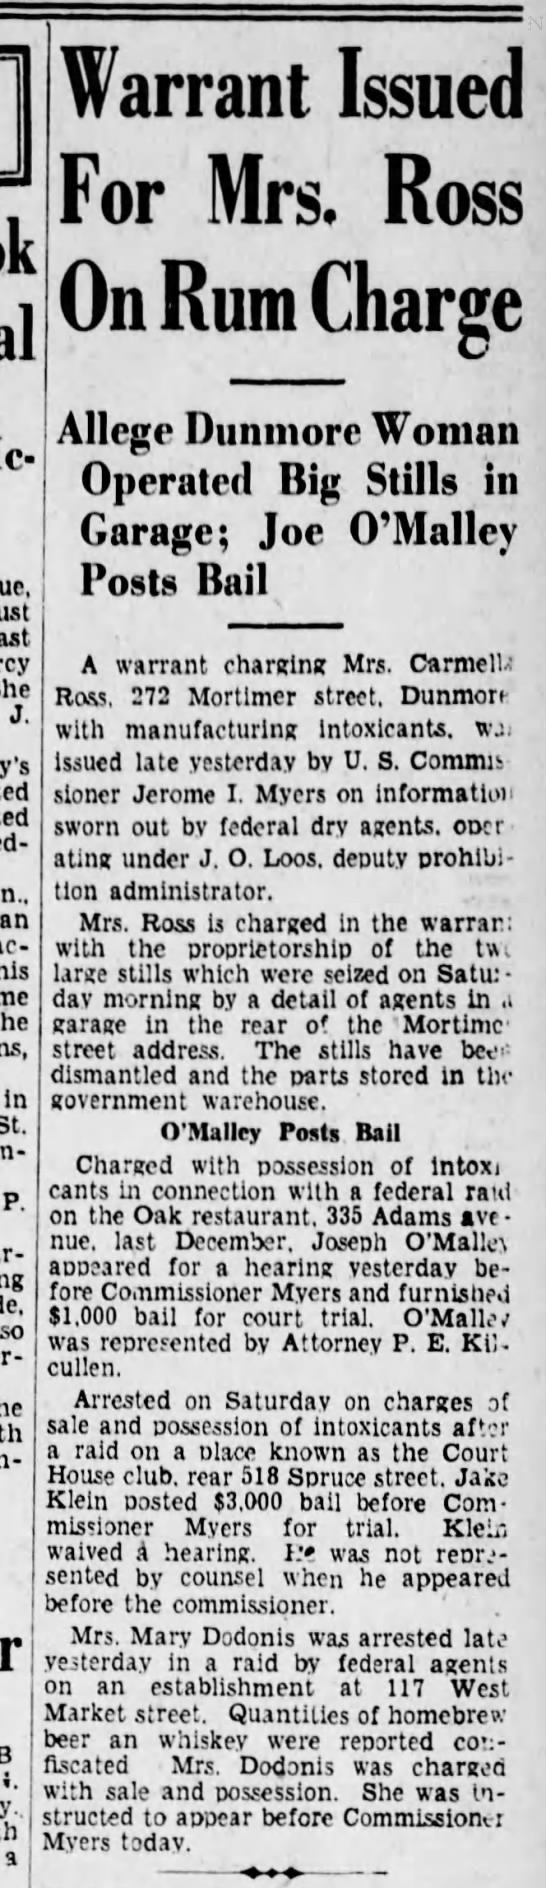 PWC O'Malley Posts Bail Scr Rep Feb 2 1932 pg 11 -